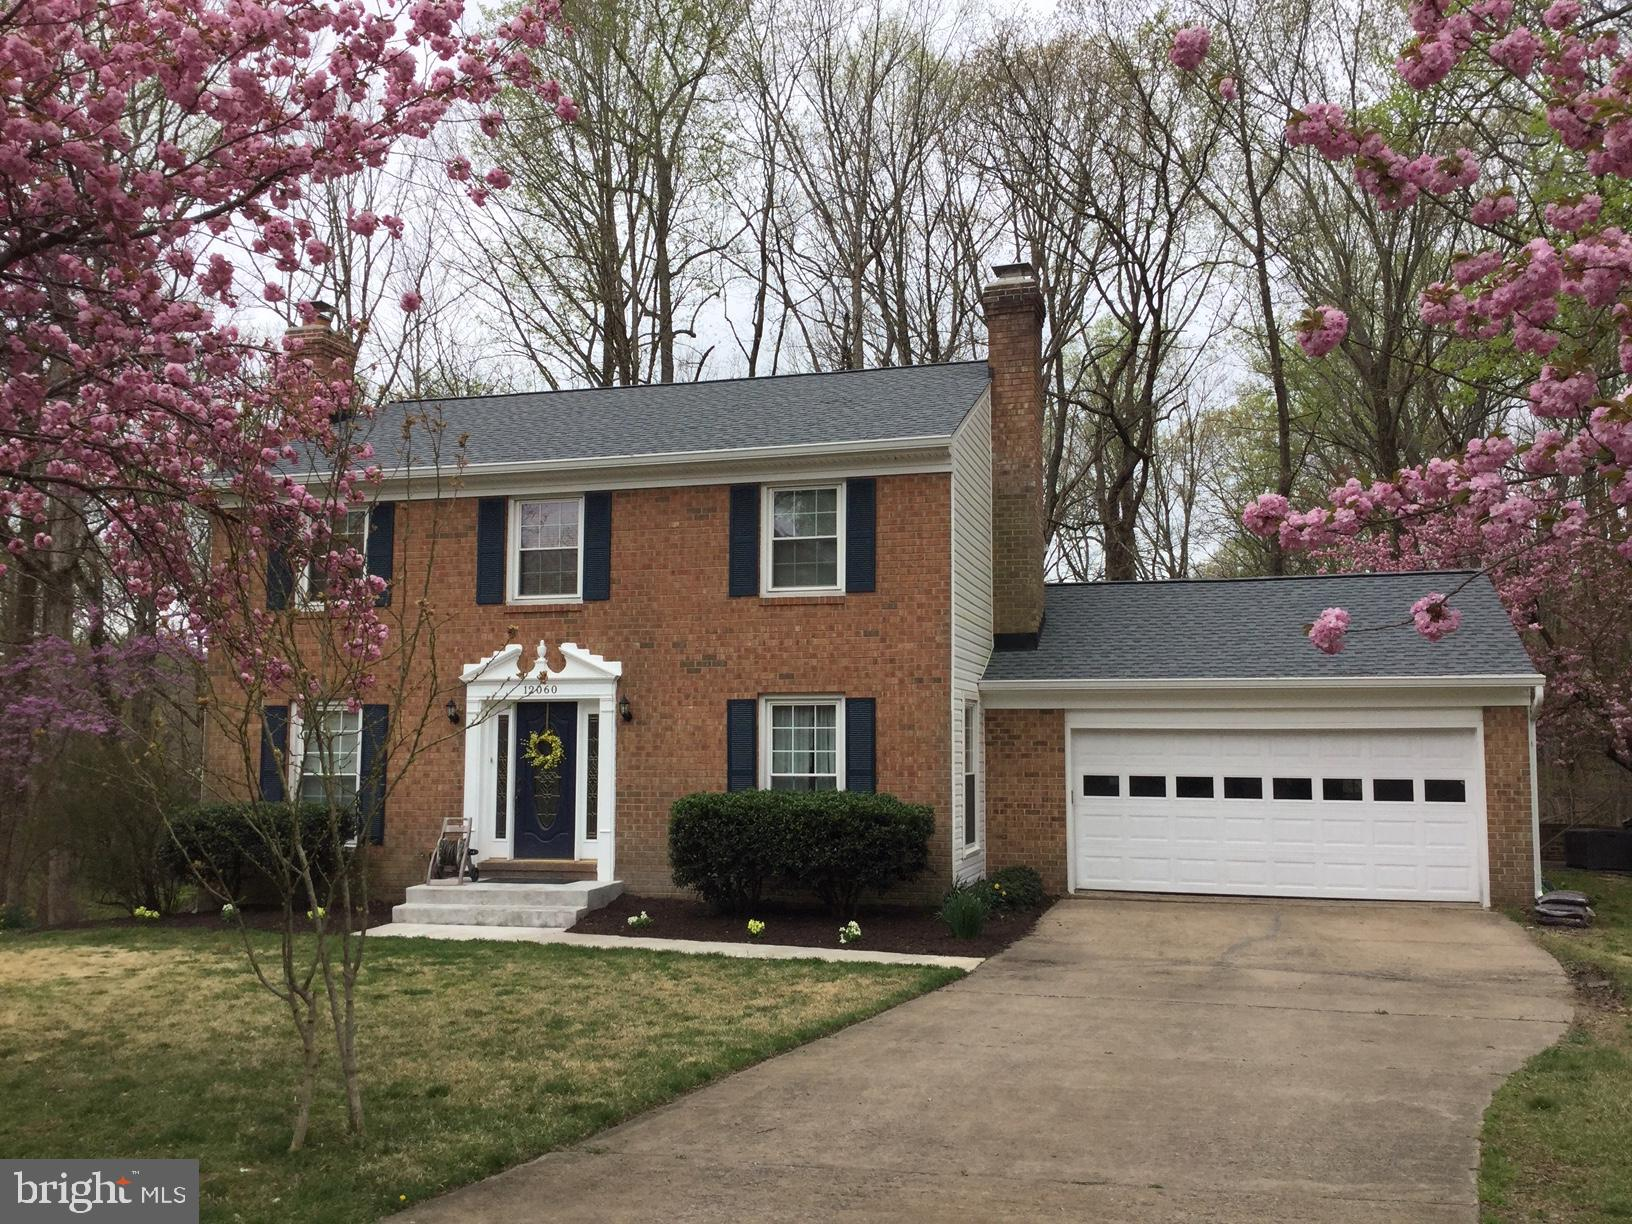 Beautiful Colonial w/Water Views! New roof & siding! 2car garage backing to woods w/Prime Lake Ridge Location! 4BRs/3.5BAs w/3 fin lvls. Hardwood floors on main & upper level, updated baths, formal living & dining rooms, family room off kitchen w/gas FP w/mantel. Upgraded Kitchen w/quartz, xtra cabinets, newer appliances & deck access. Finished basement w/rec room, FP, full bath & walk-out.